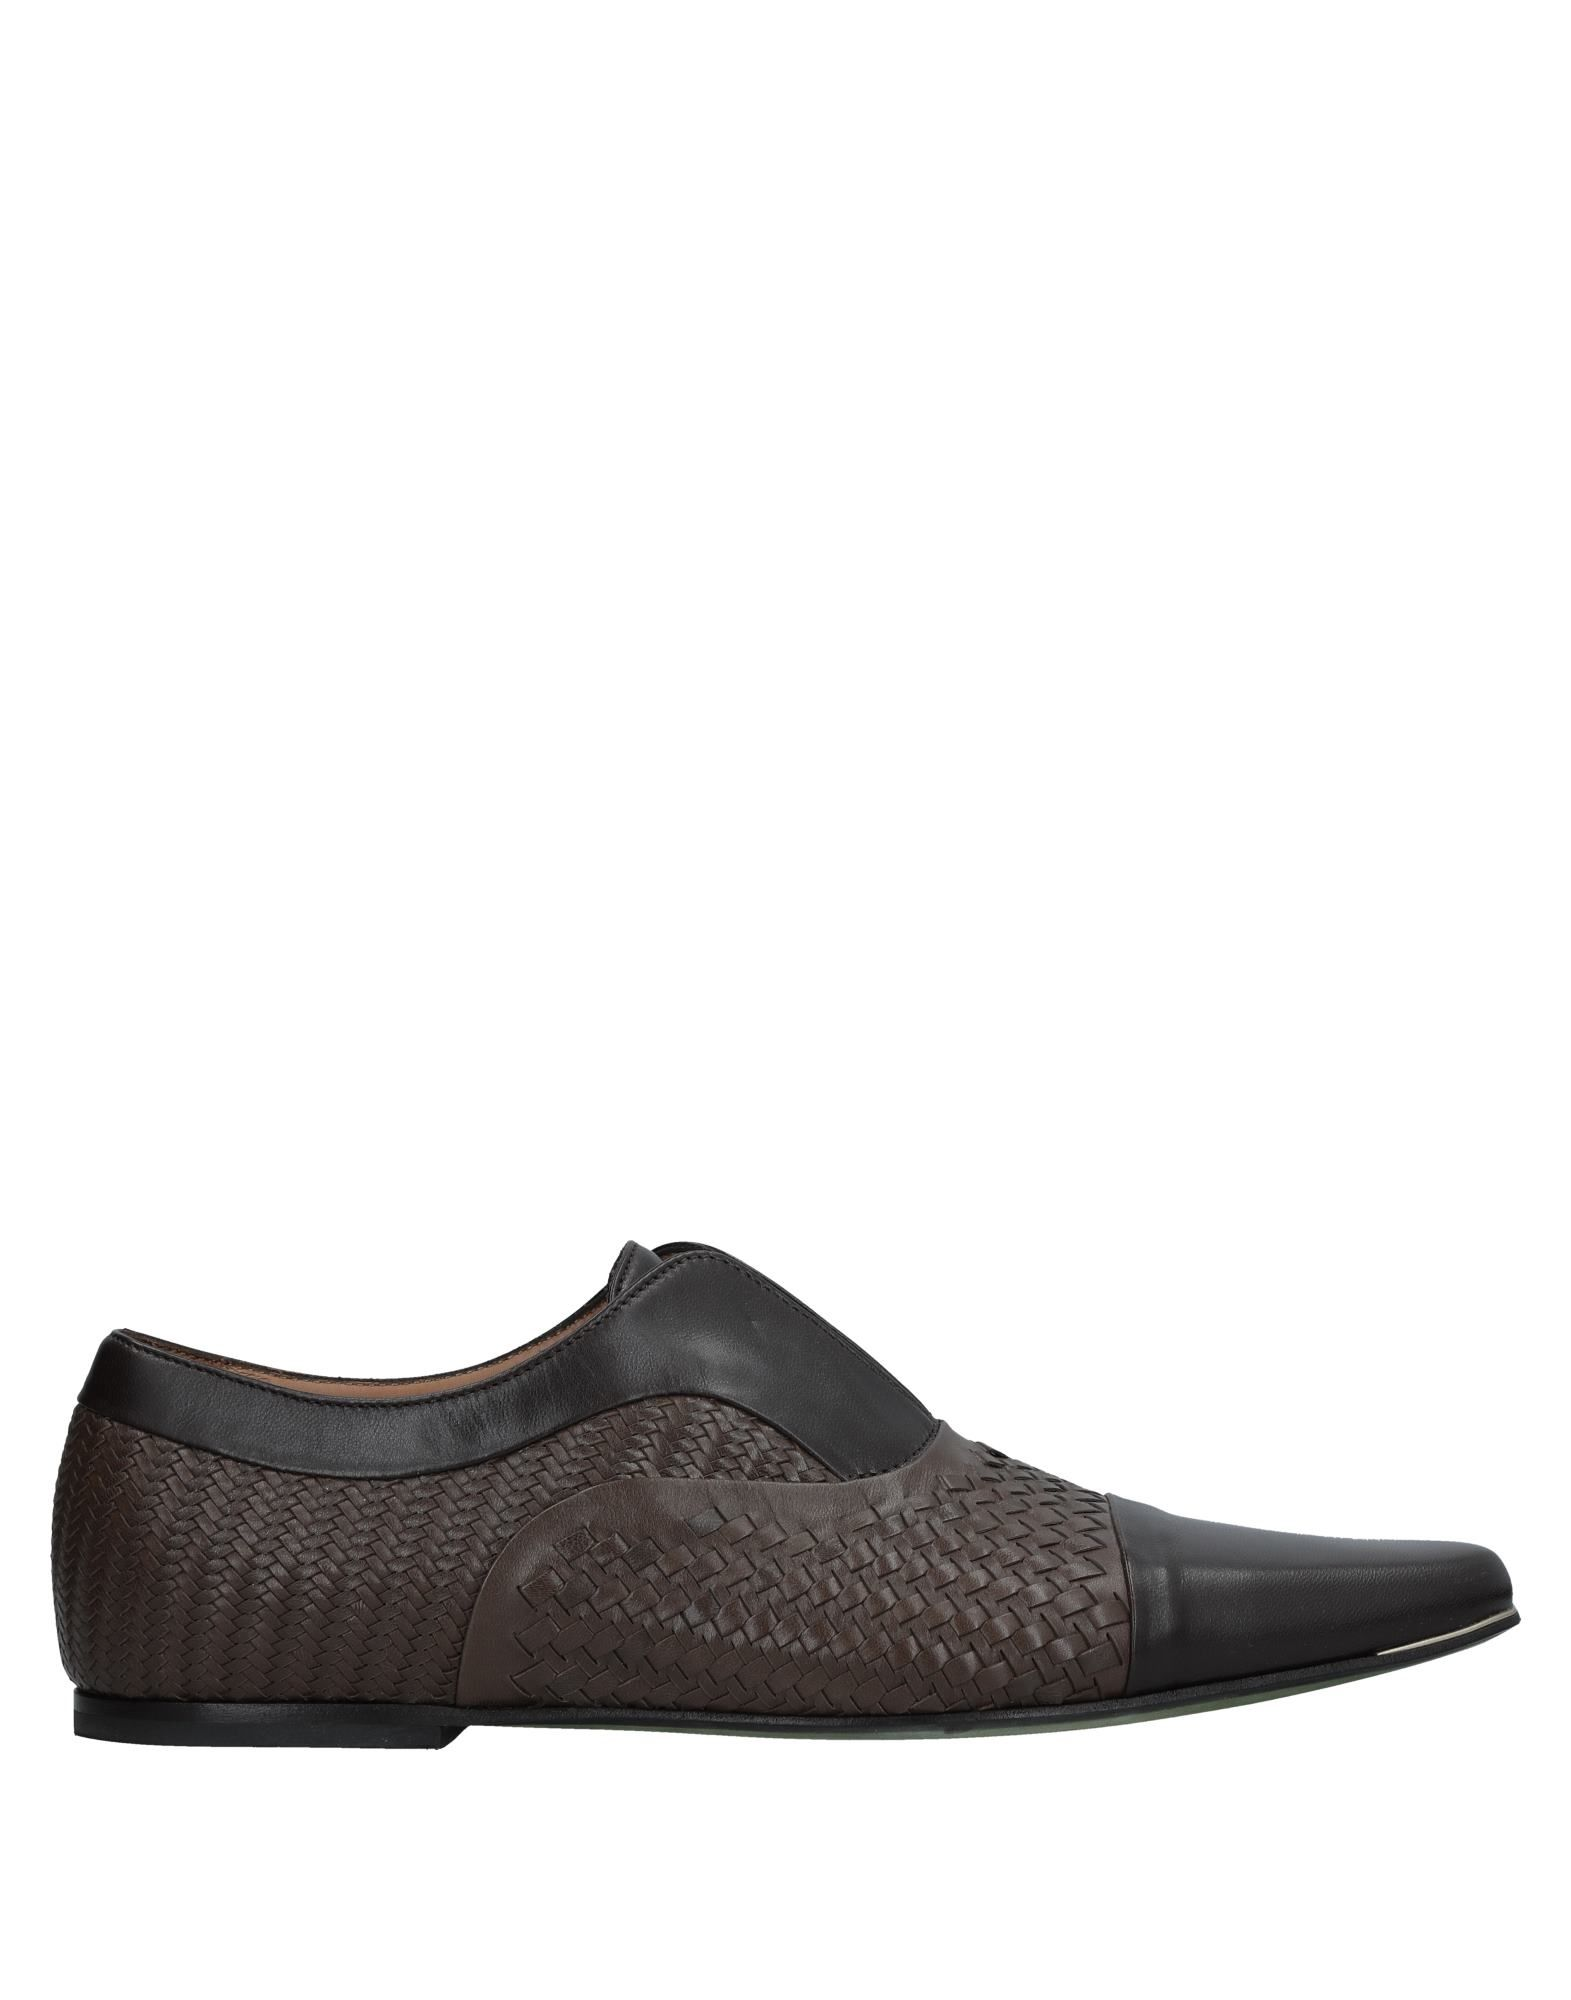 Etro Loafers - Men Etro Loafers online on 11523781QR  United Kingdom - 11523781QR on 9bf6d9